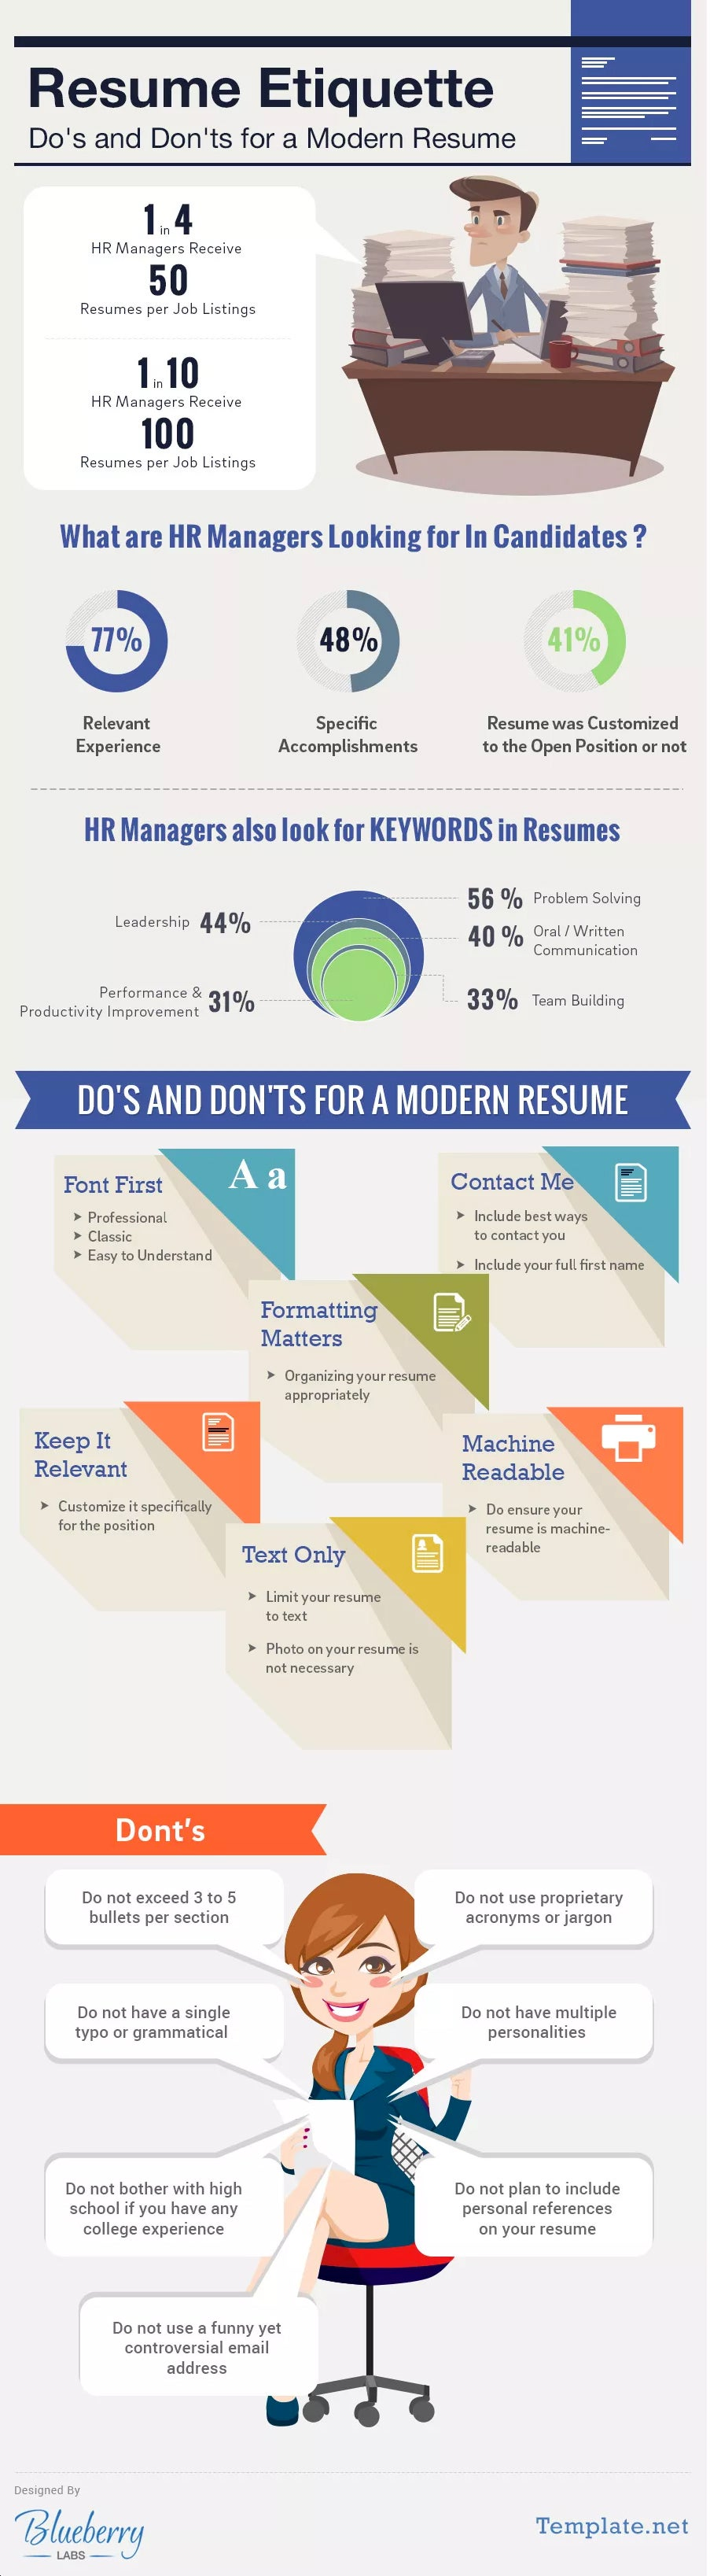 The dos and donts of the modern resum infographic the dos and donts of the modern resume infographic thecheapjerseys